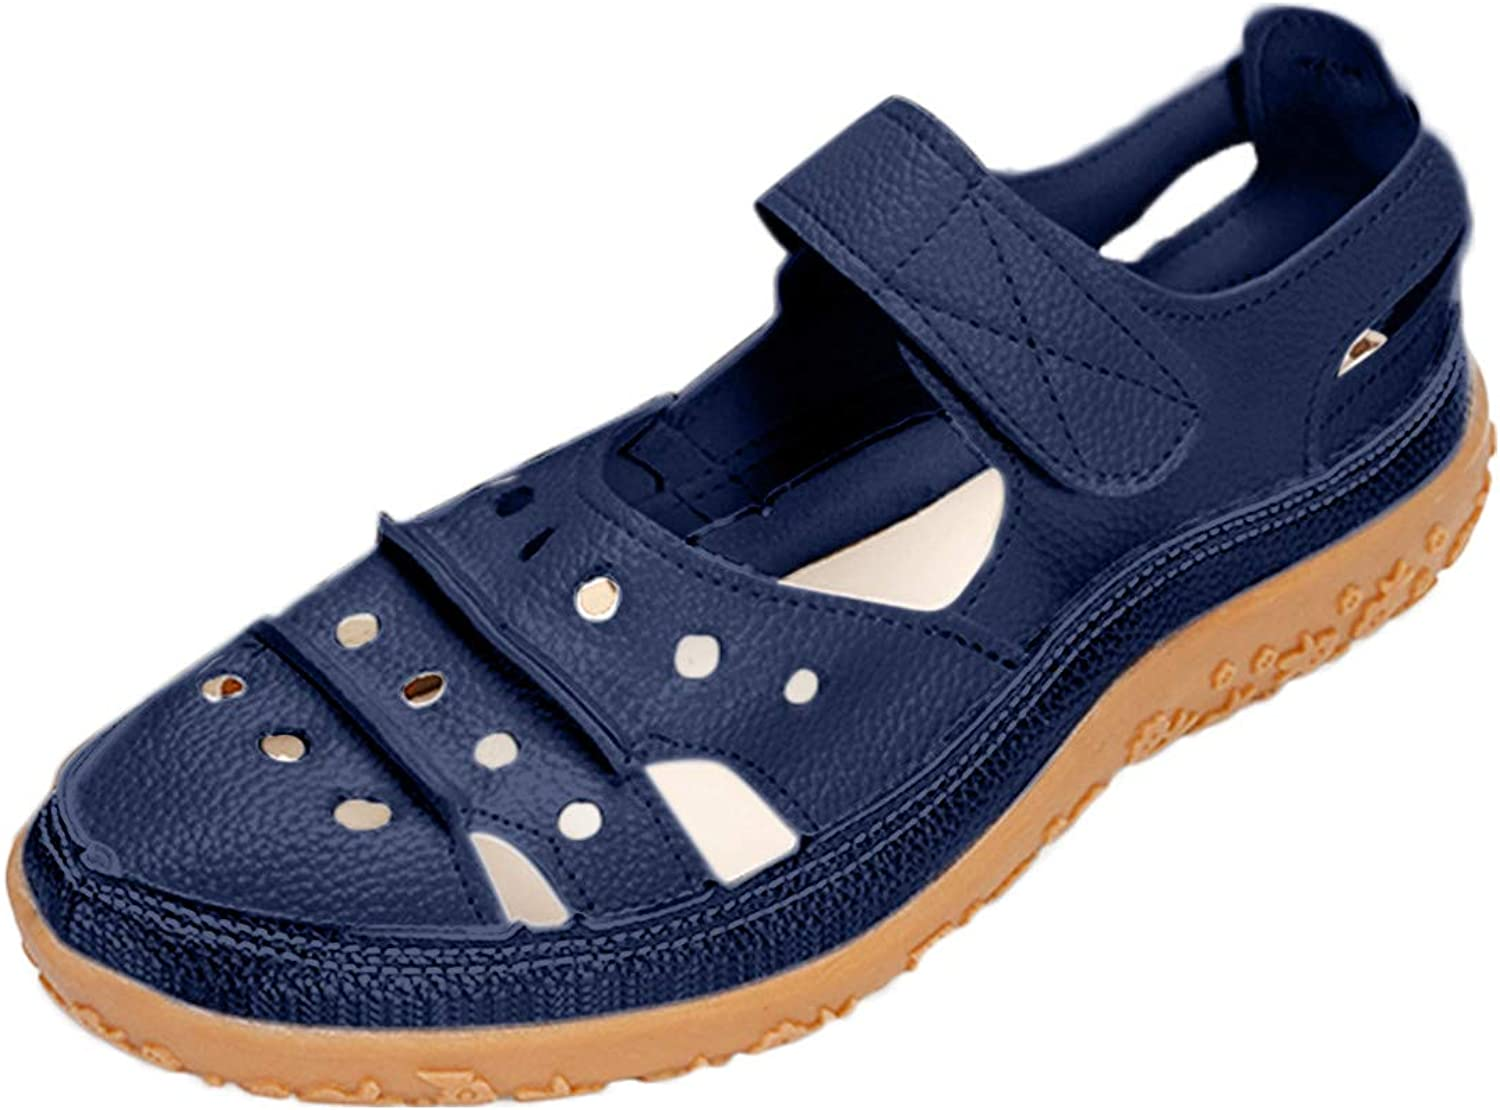 Nihewoo Sandals for Women Casual Summer Challenge the lowest price of Japan ☆ Size Large Ranking TOP18 Breath Hollow